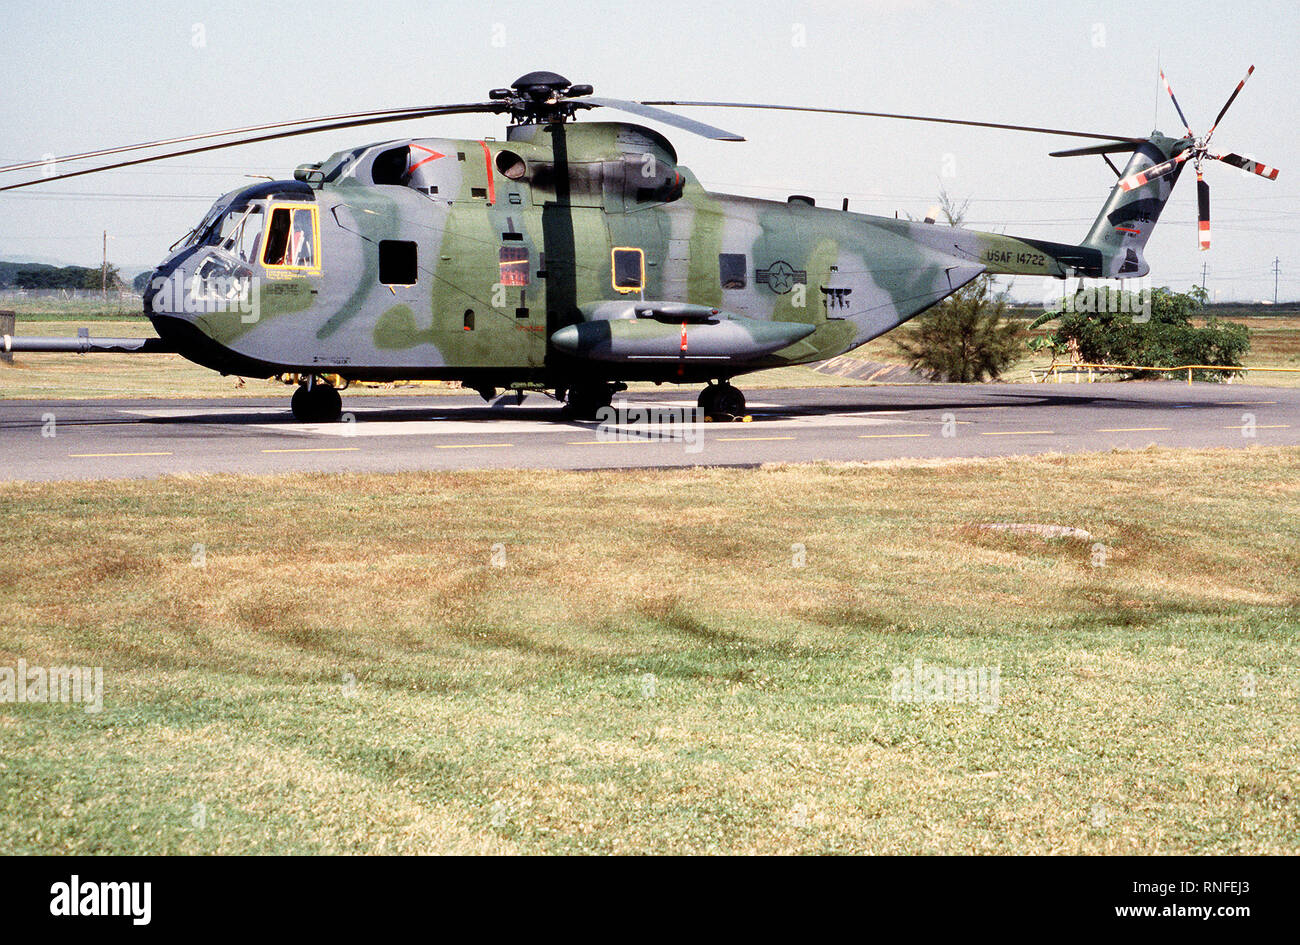 Left side view of a HH-3E Jolly Green Giant helicopter parked on the runway apron. - Stock Image